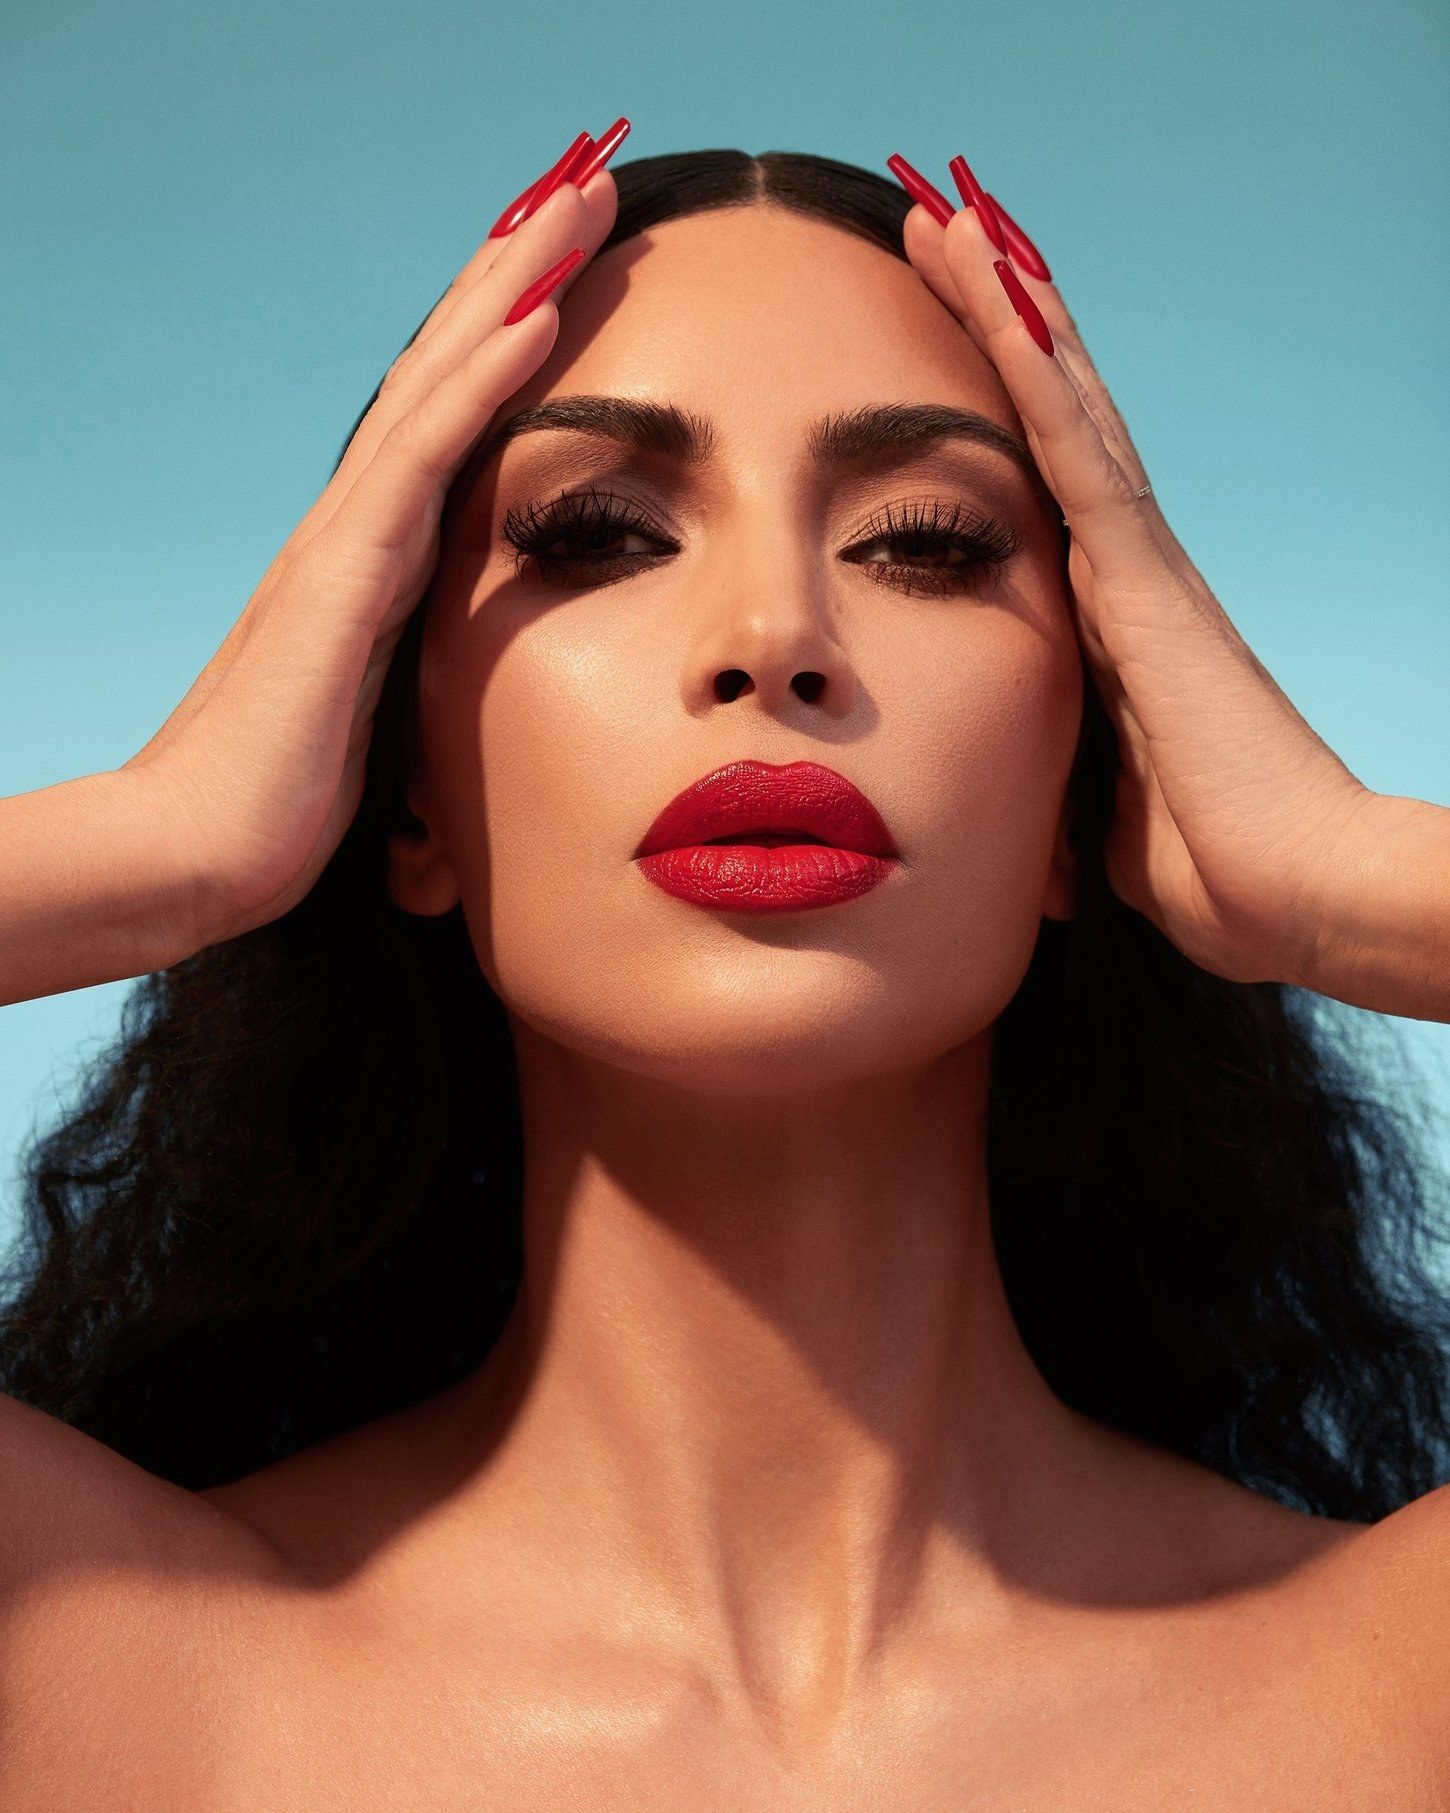 KKW Beauty Launches Its First Classic Red Lipstick on